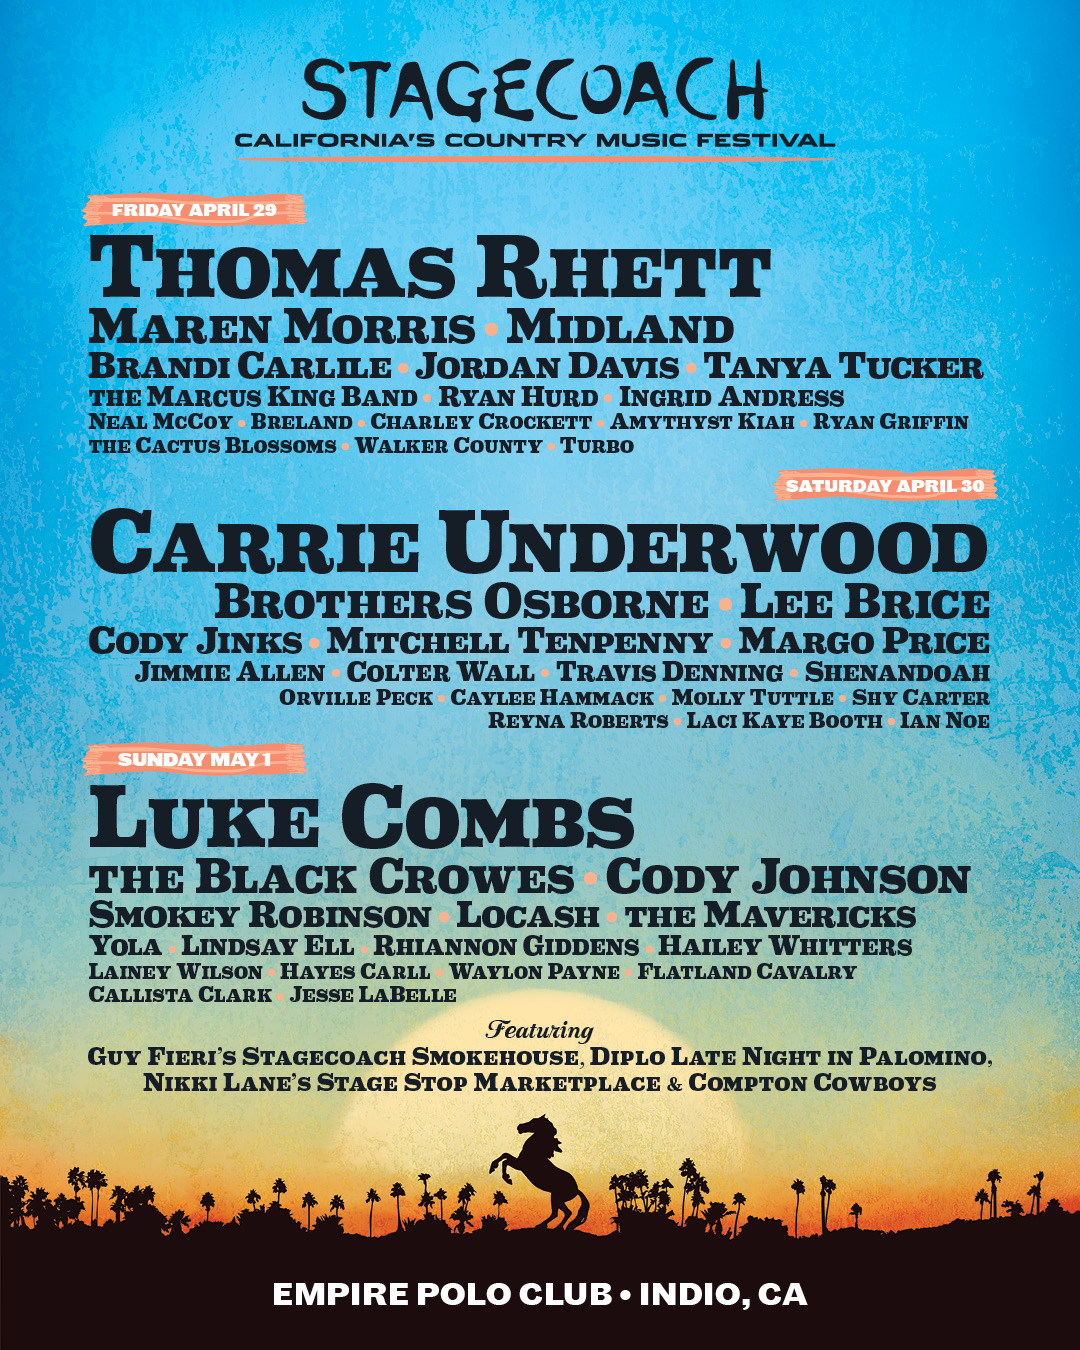 stagecoach lineup 2022